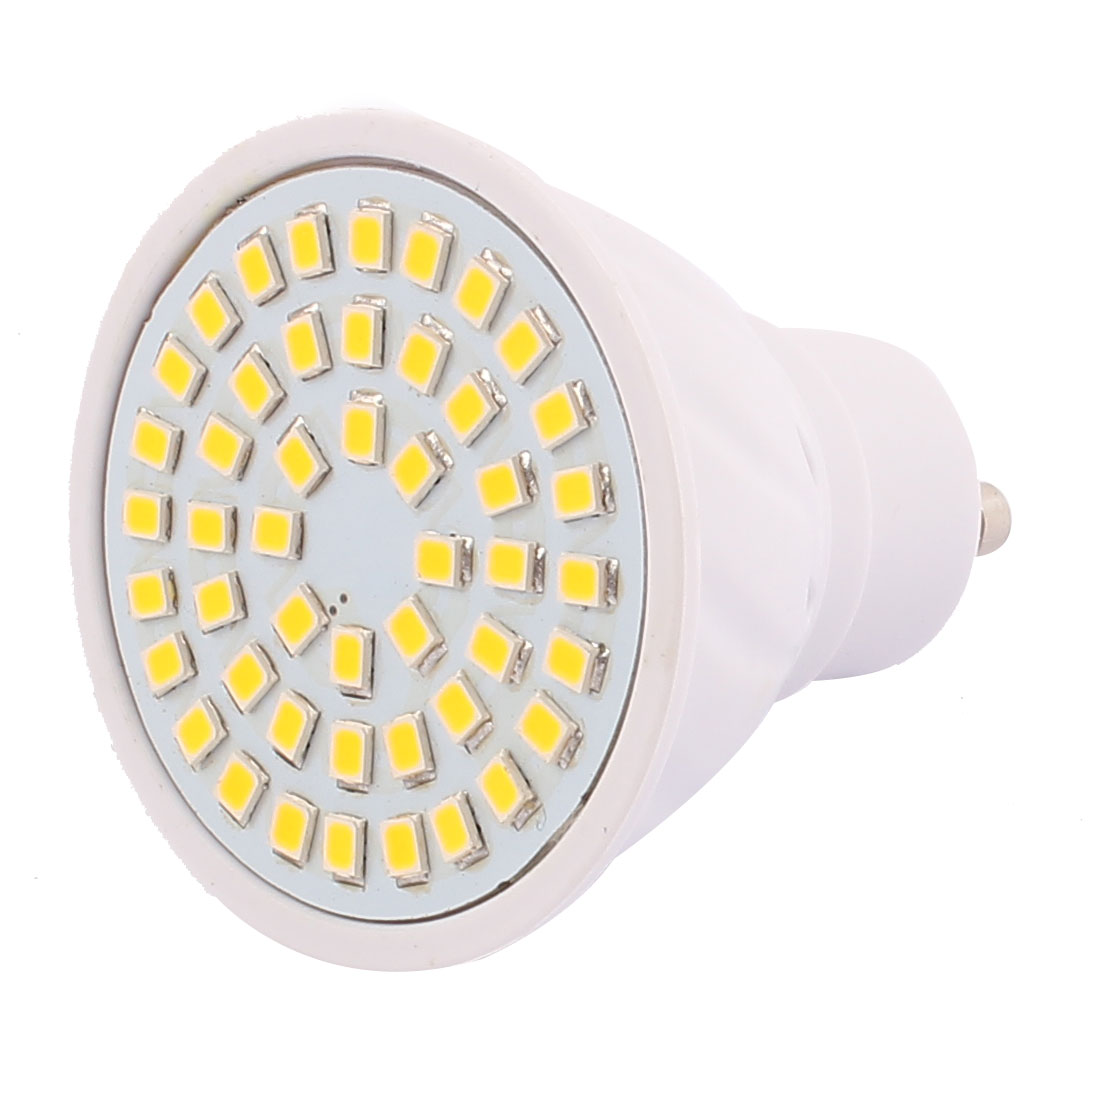 GU10 SMD 2835 48 LEDs Plastic Energy-Saving LED Lamp Bulb Warm White AC 110V 4W